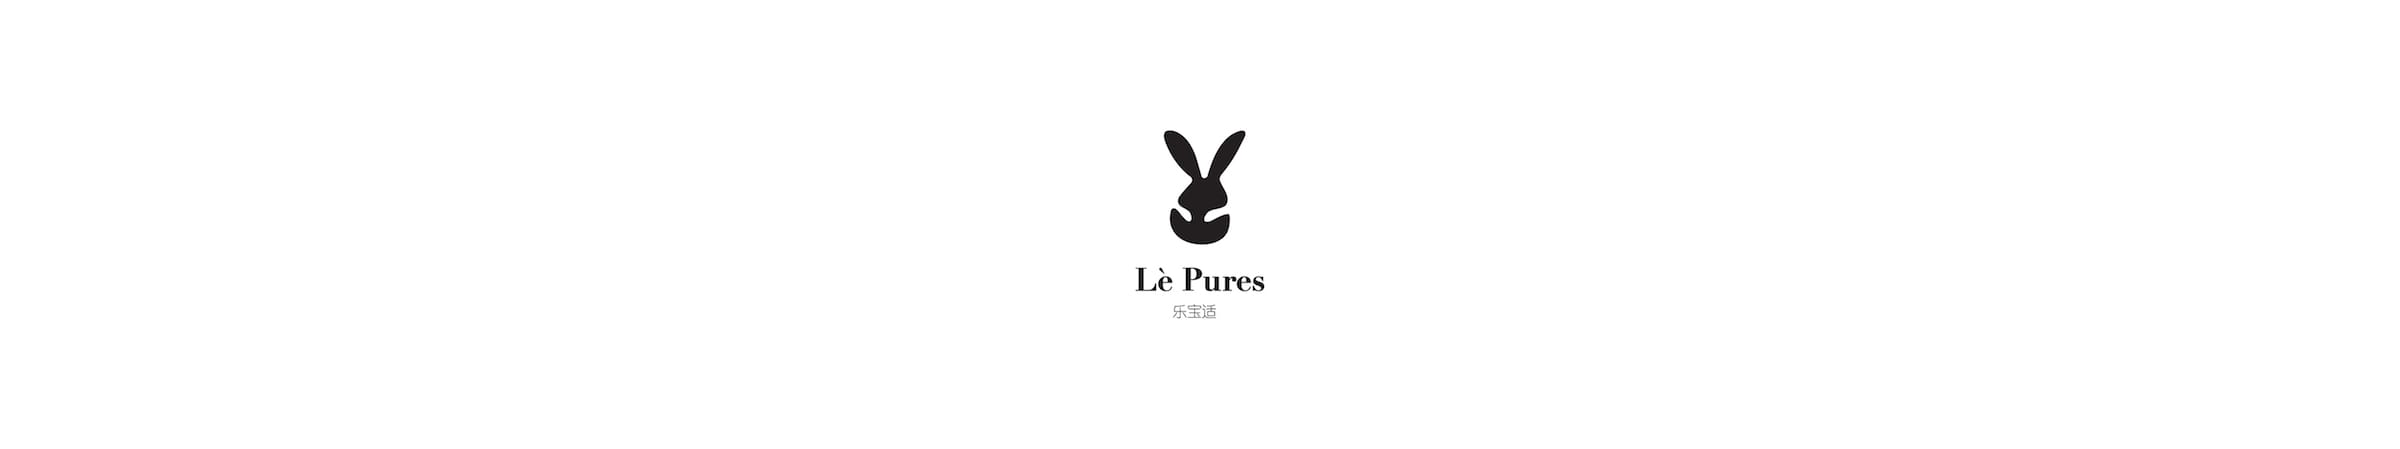 le pures logo black and white